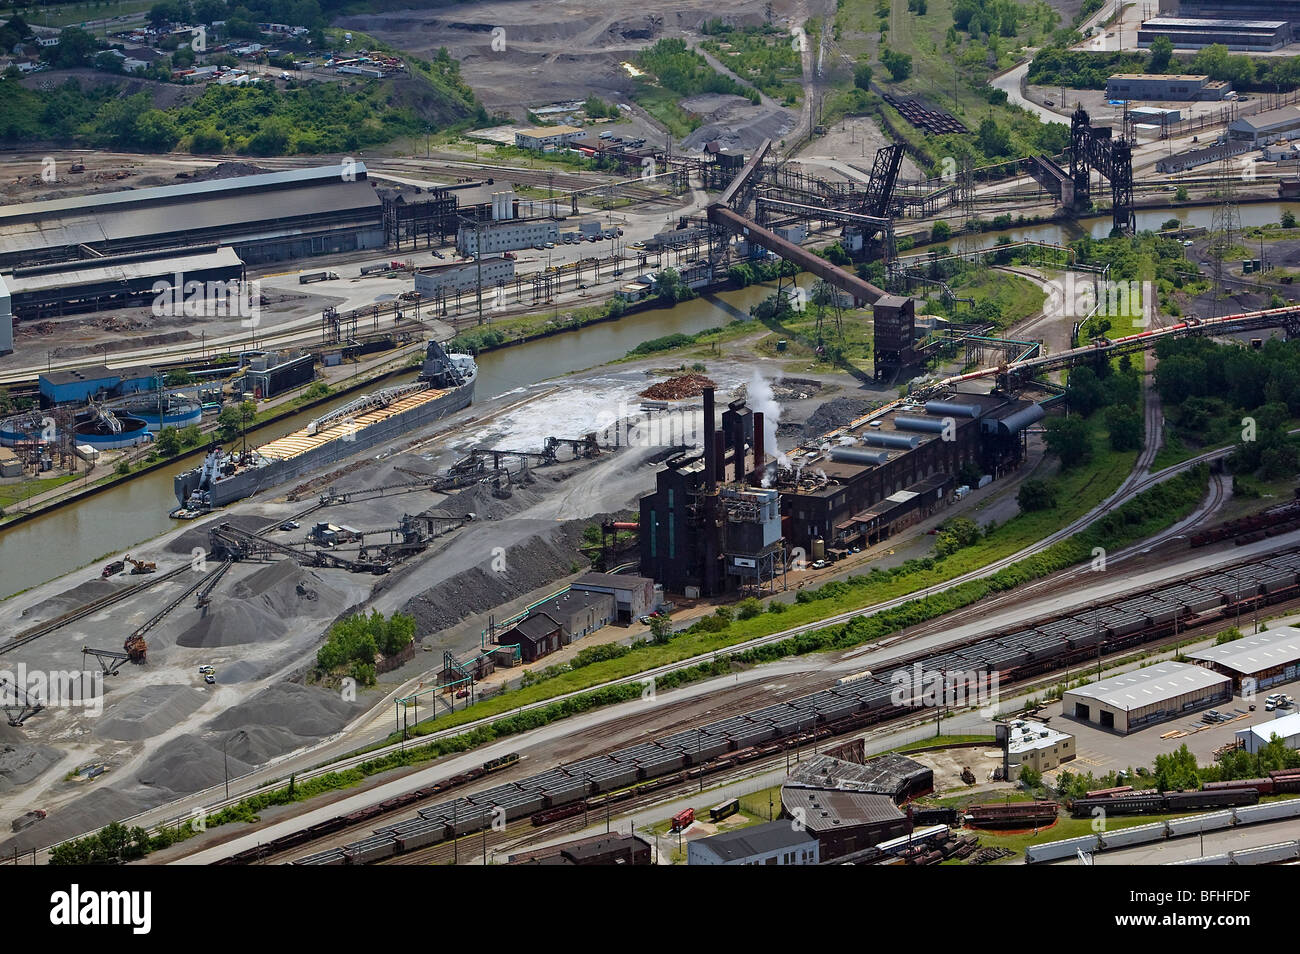 aerial view above Cleveland steel mills at Cuyahoga river - Stock Image